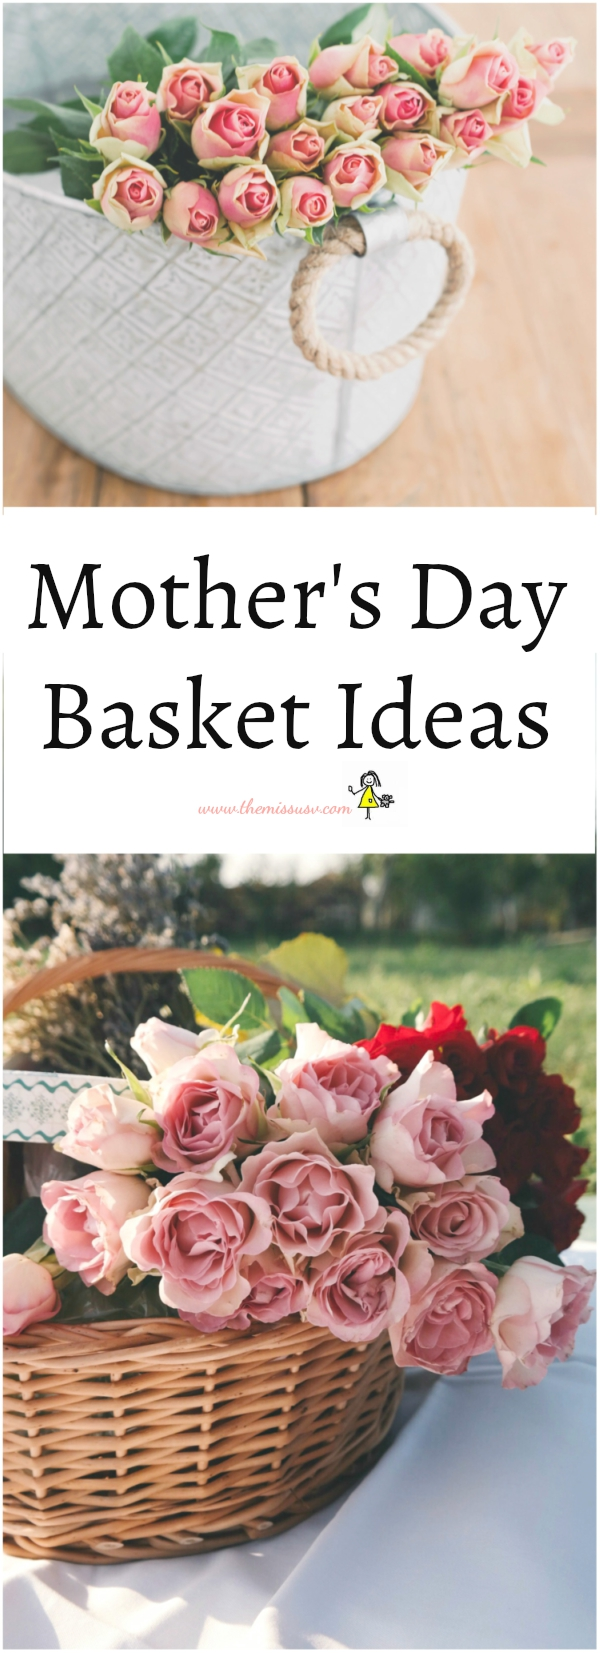 Mother's Day Basket Ideas